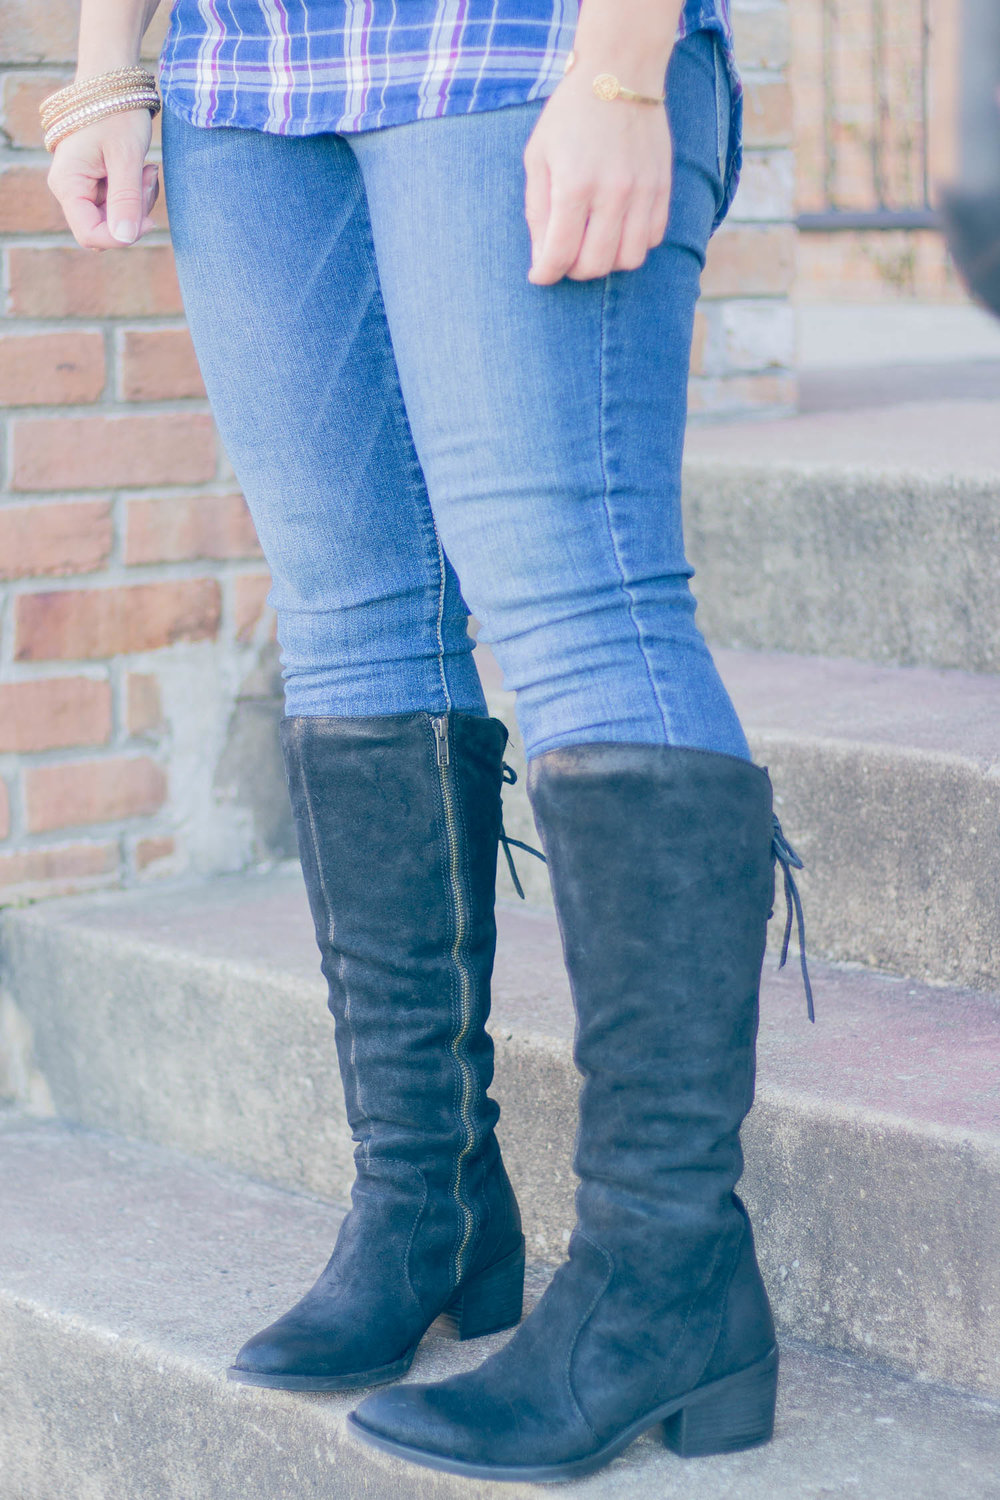 Boots-Outfit.jpg